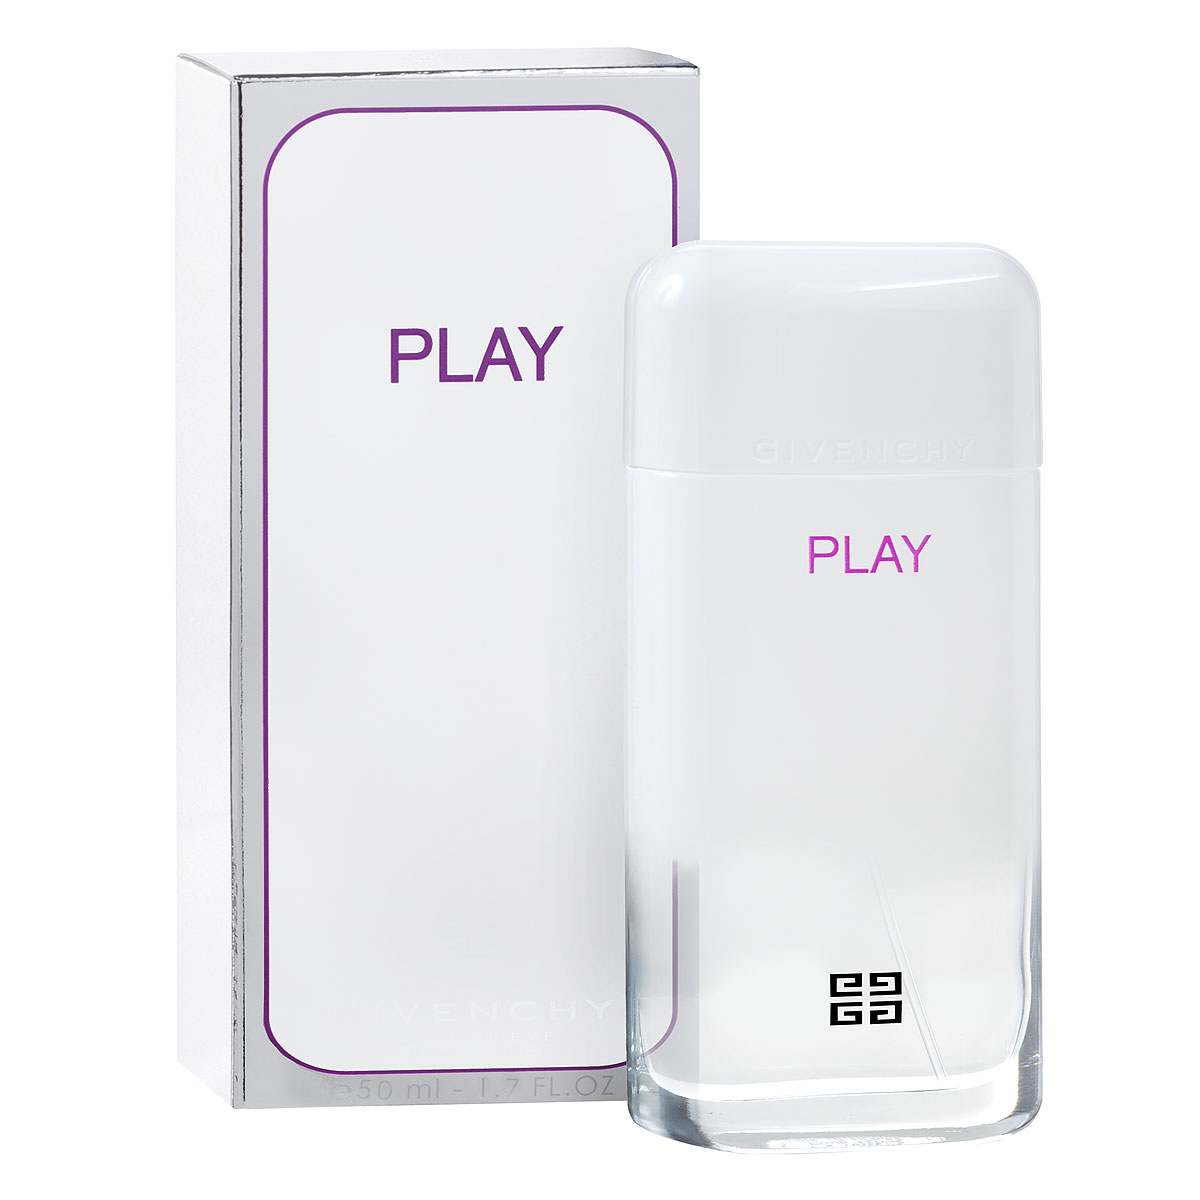 Givenchy Туалетная вода Play For Her Eau de Toilette, женская, 50 мл givenchy eau de toilette intense купить в спб